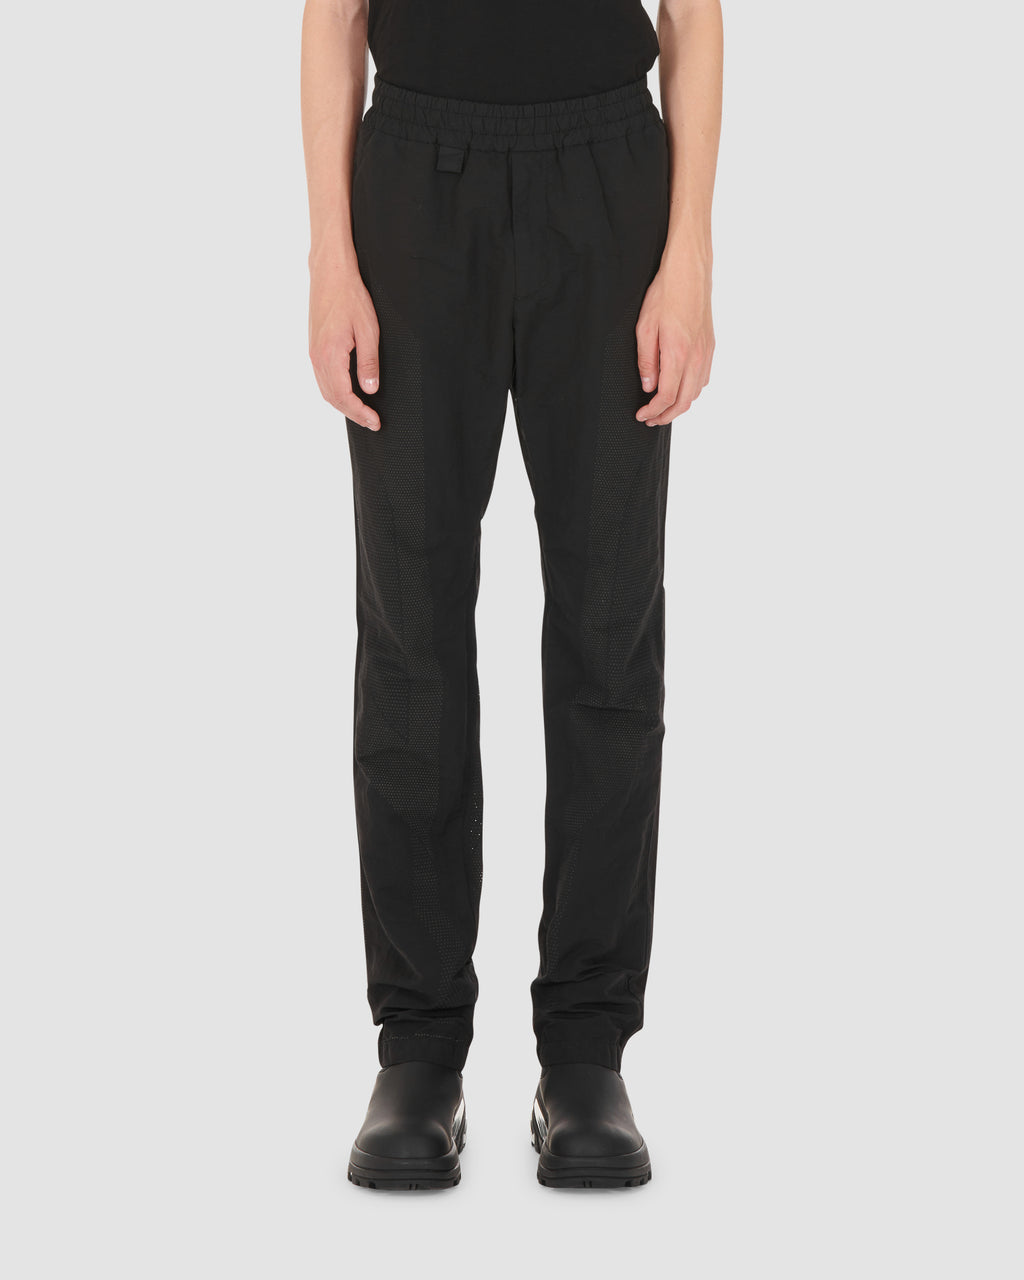 1017 ALYX 9SM | PERFORATED PANT | Pants | Black, Google Shopping, Man, MEN, PANTS, S20, S20 Drop II, Trousers